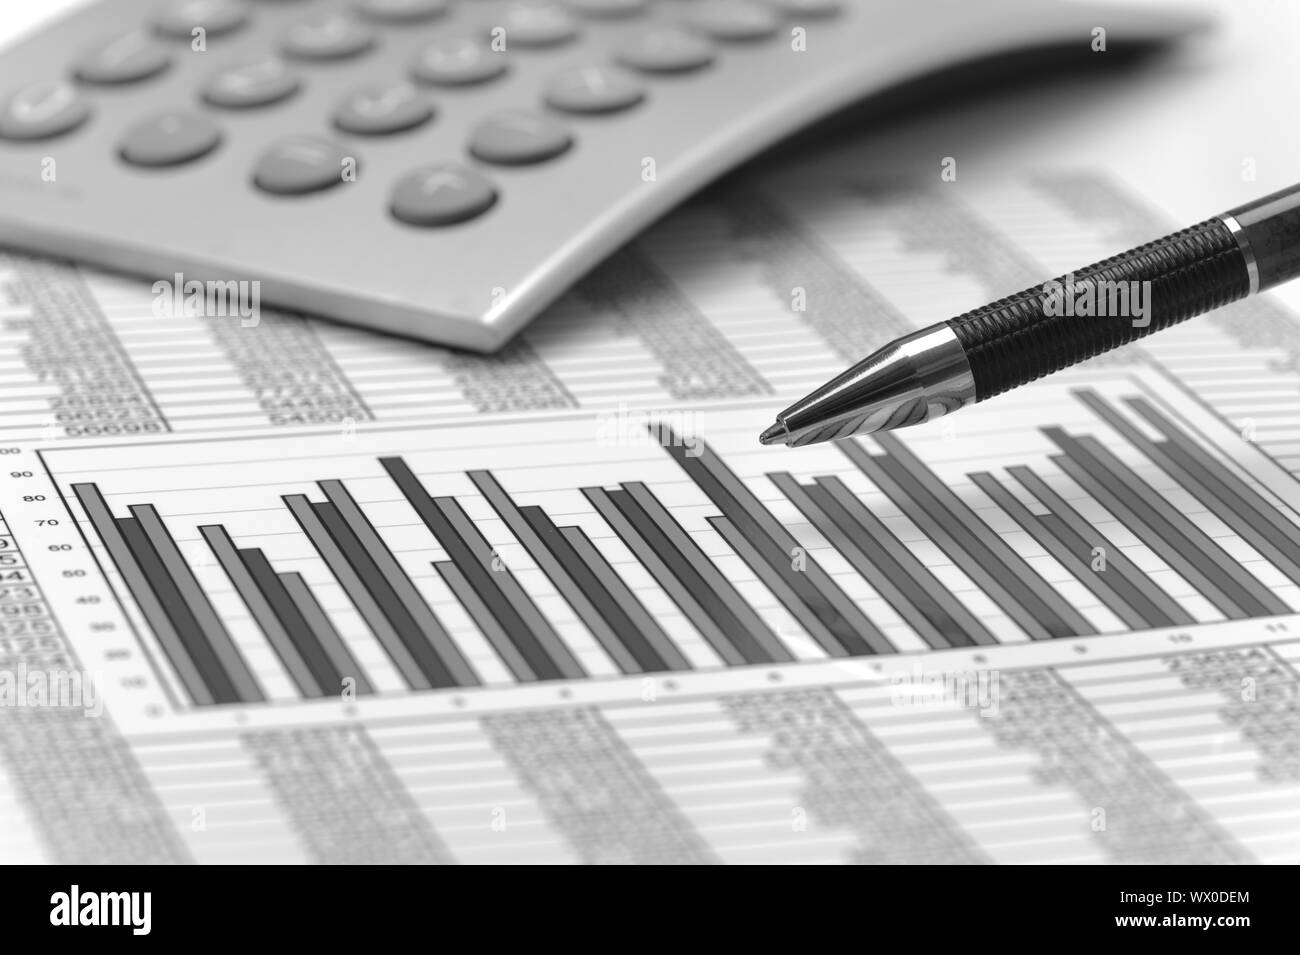 calculator and pencil laying on financial business chart Stock Photo